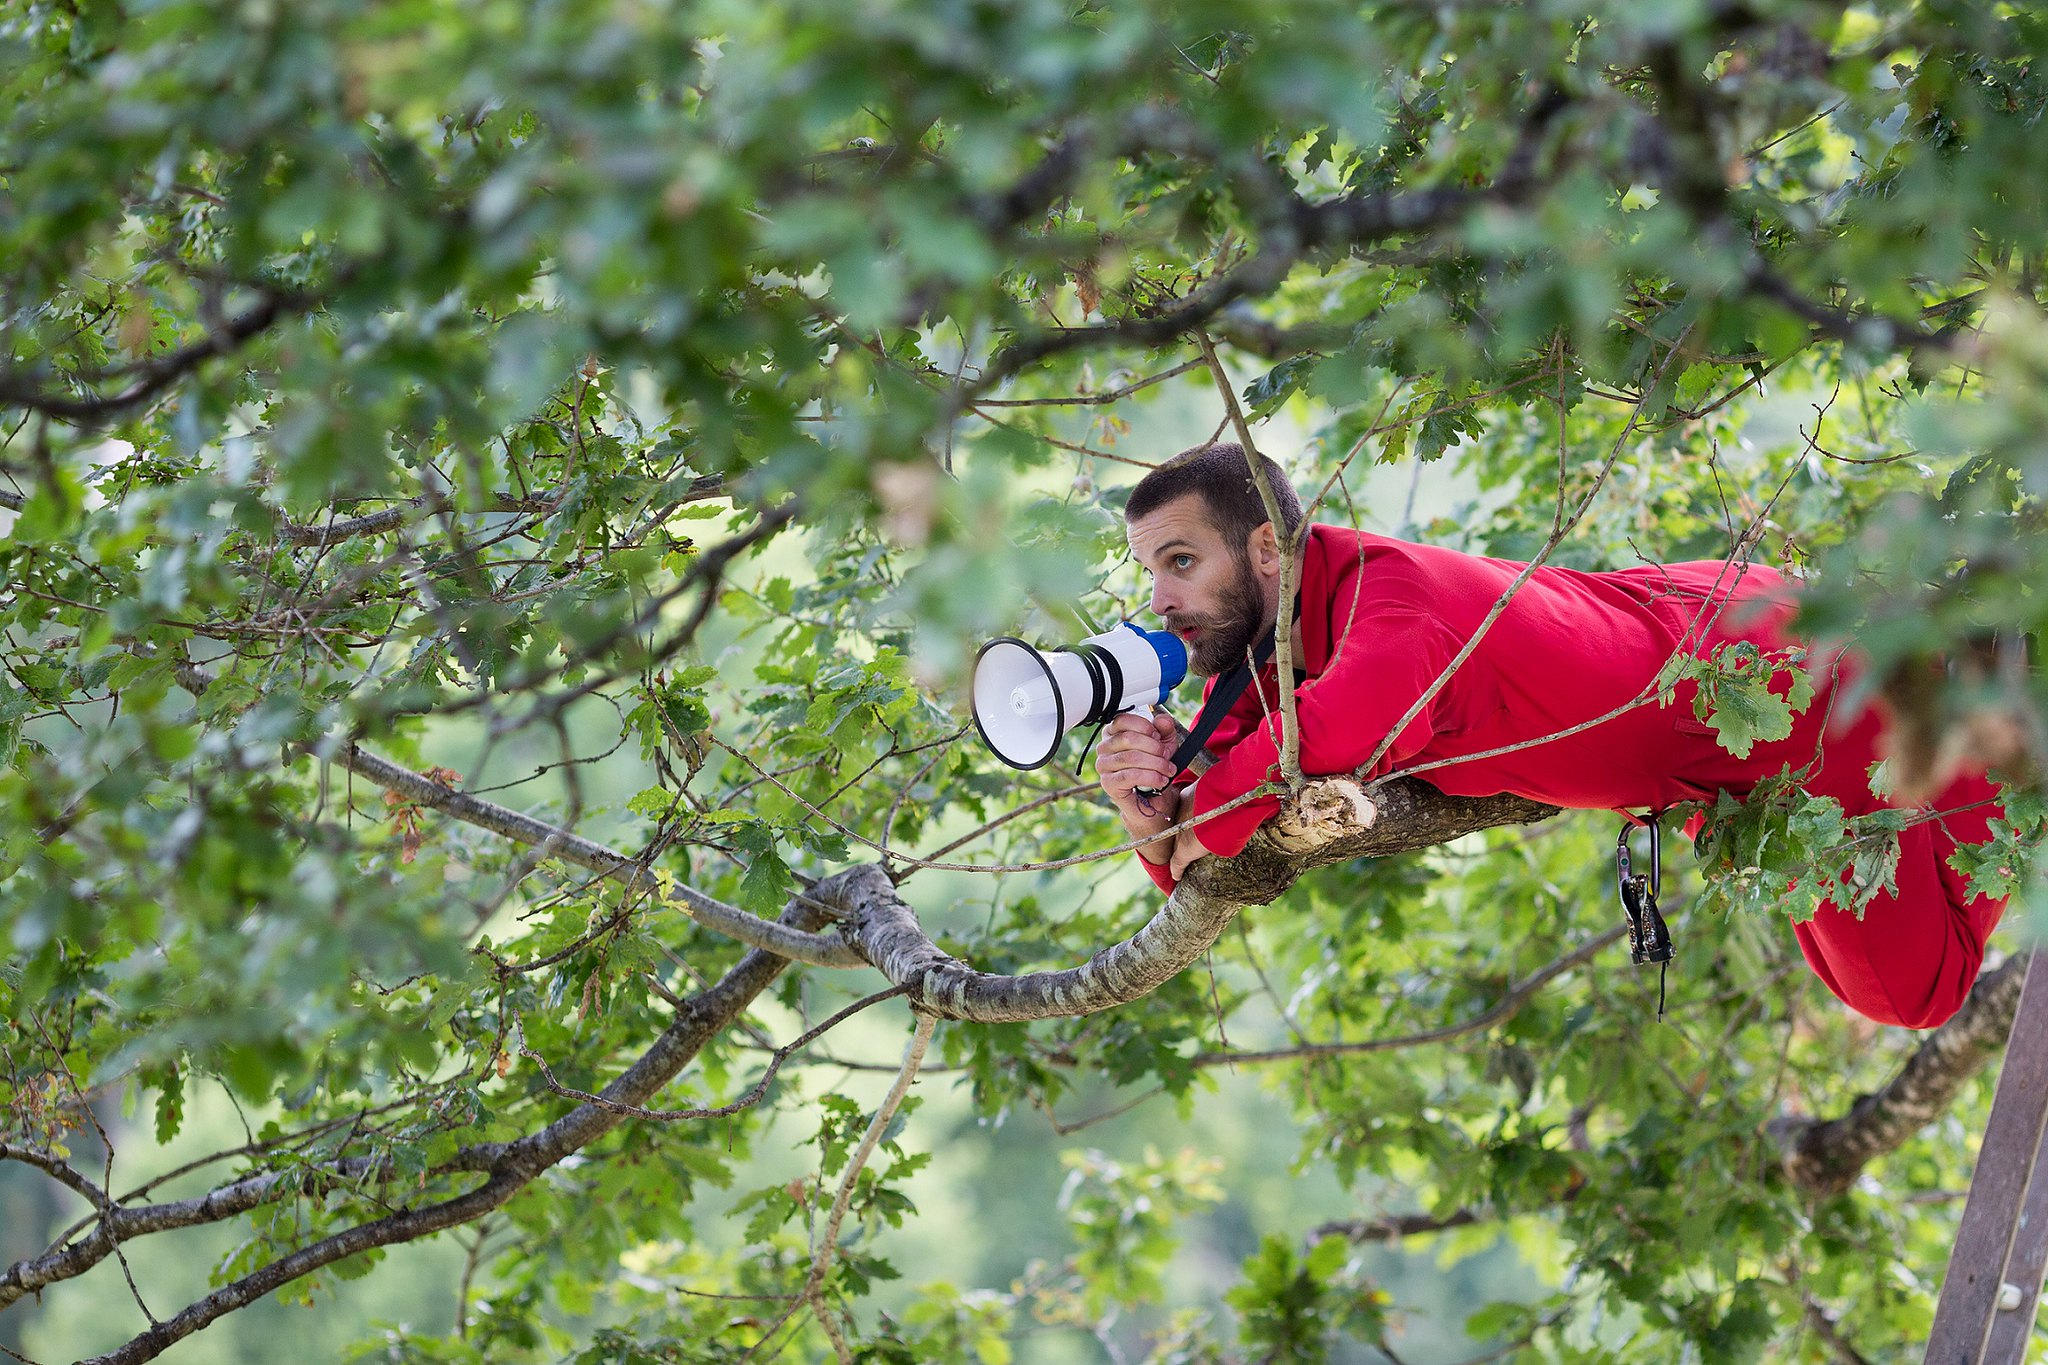 Man in tree with megaphone